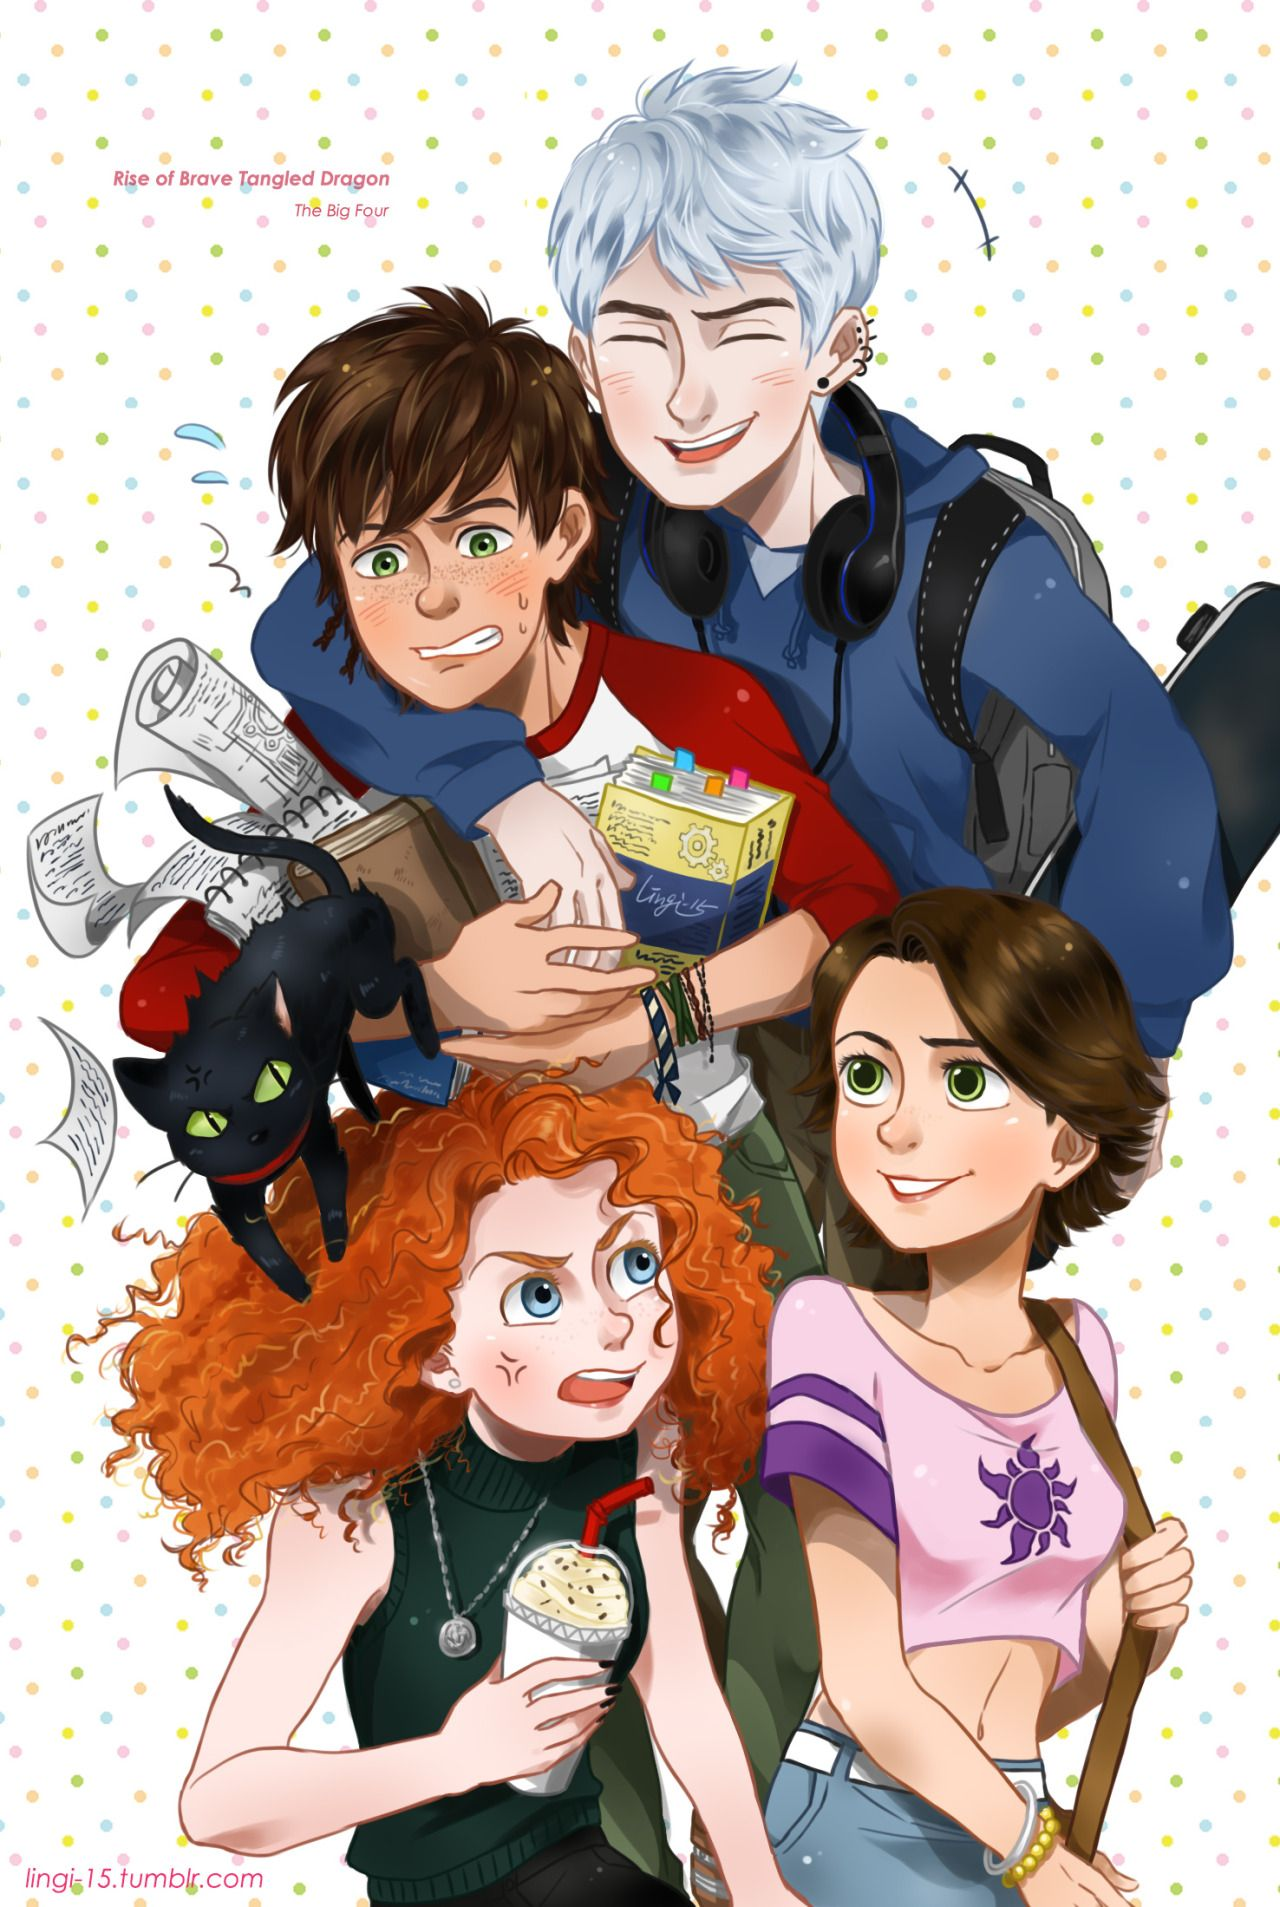 The Big Four Tumblr Desenho Animado Disney Animacao Da Disney